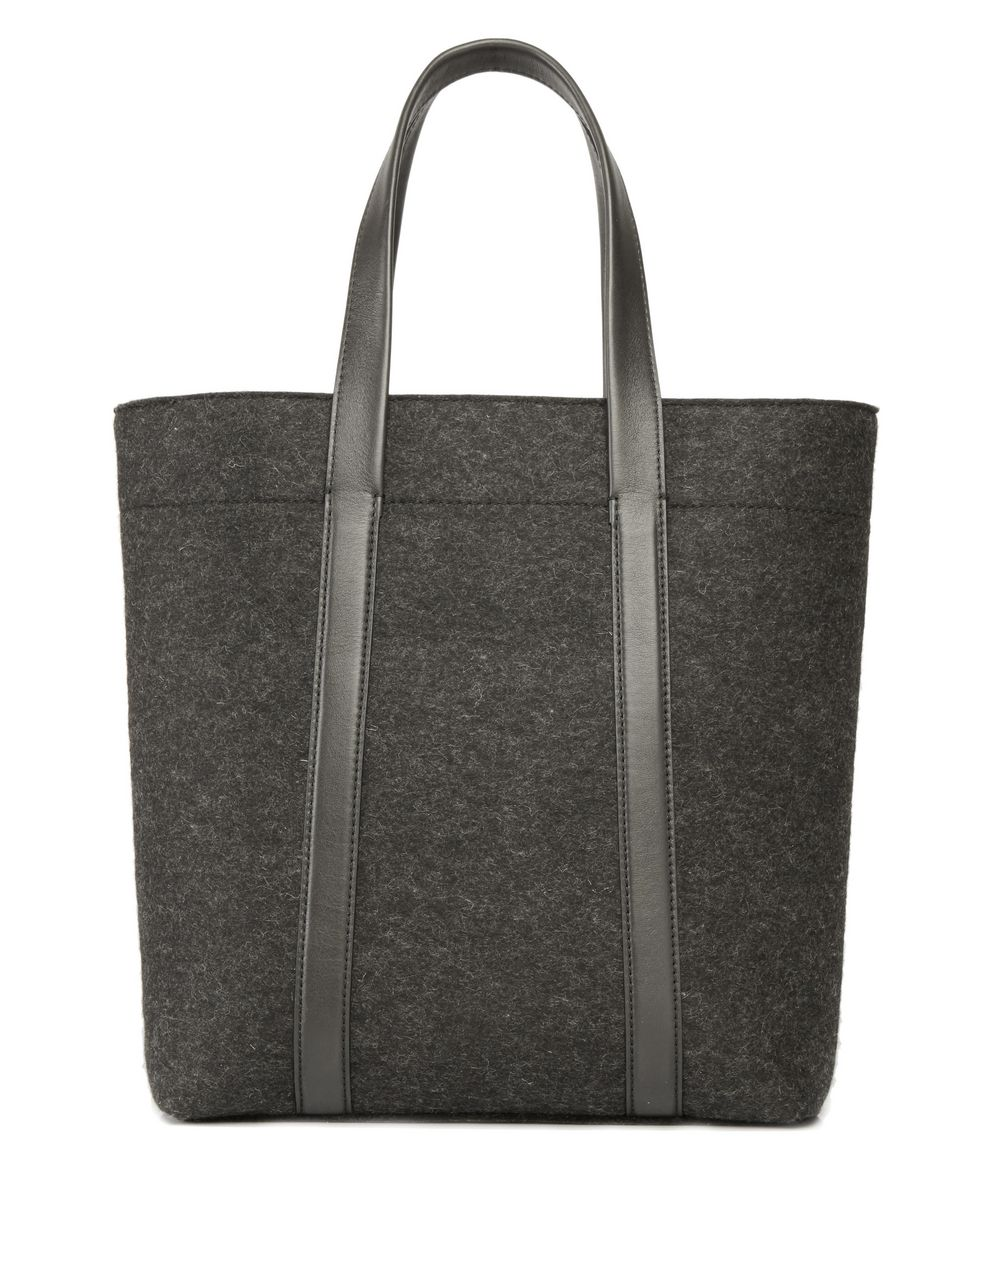 WOOL FELT TOTE BAG - Lanvin